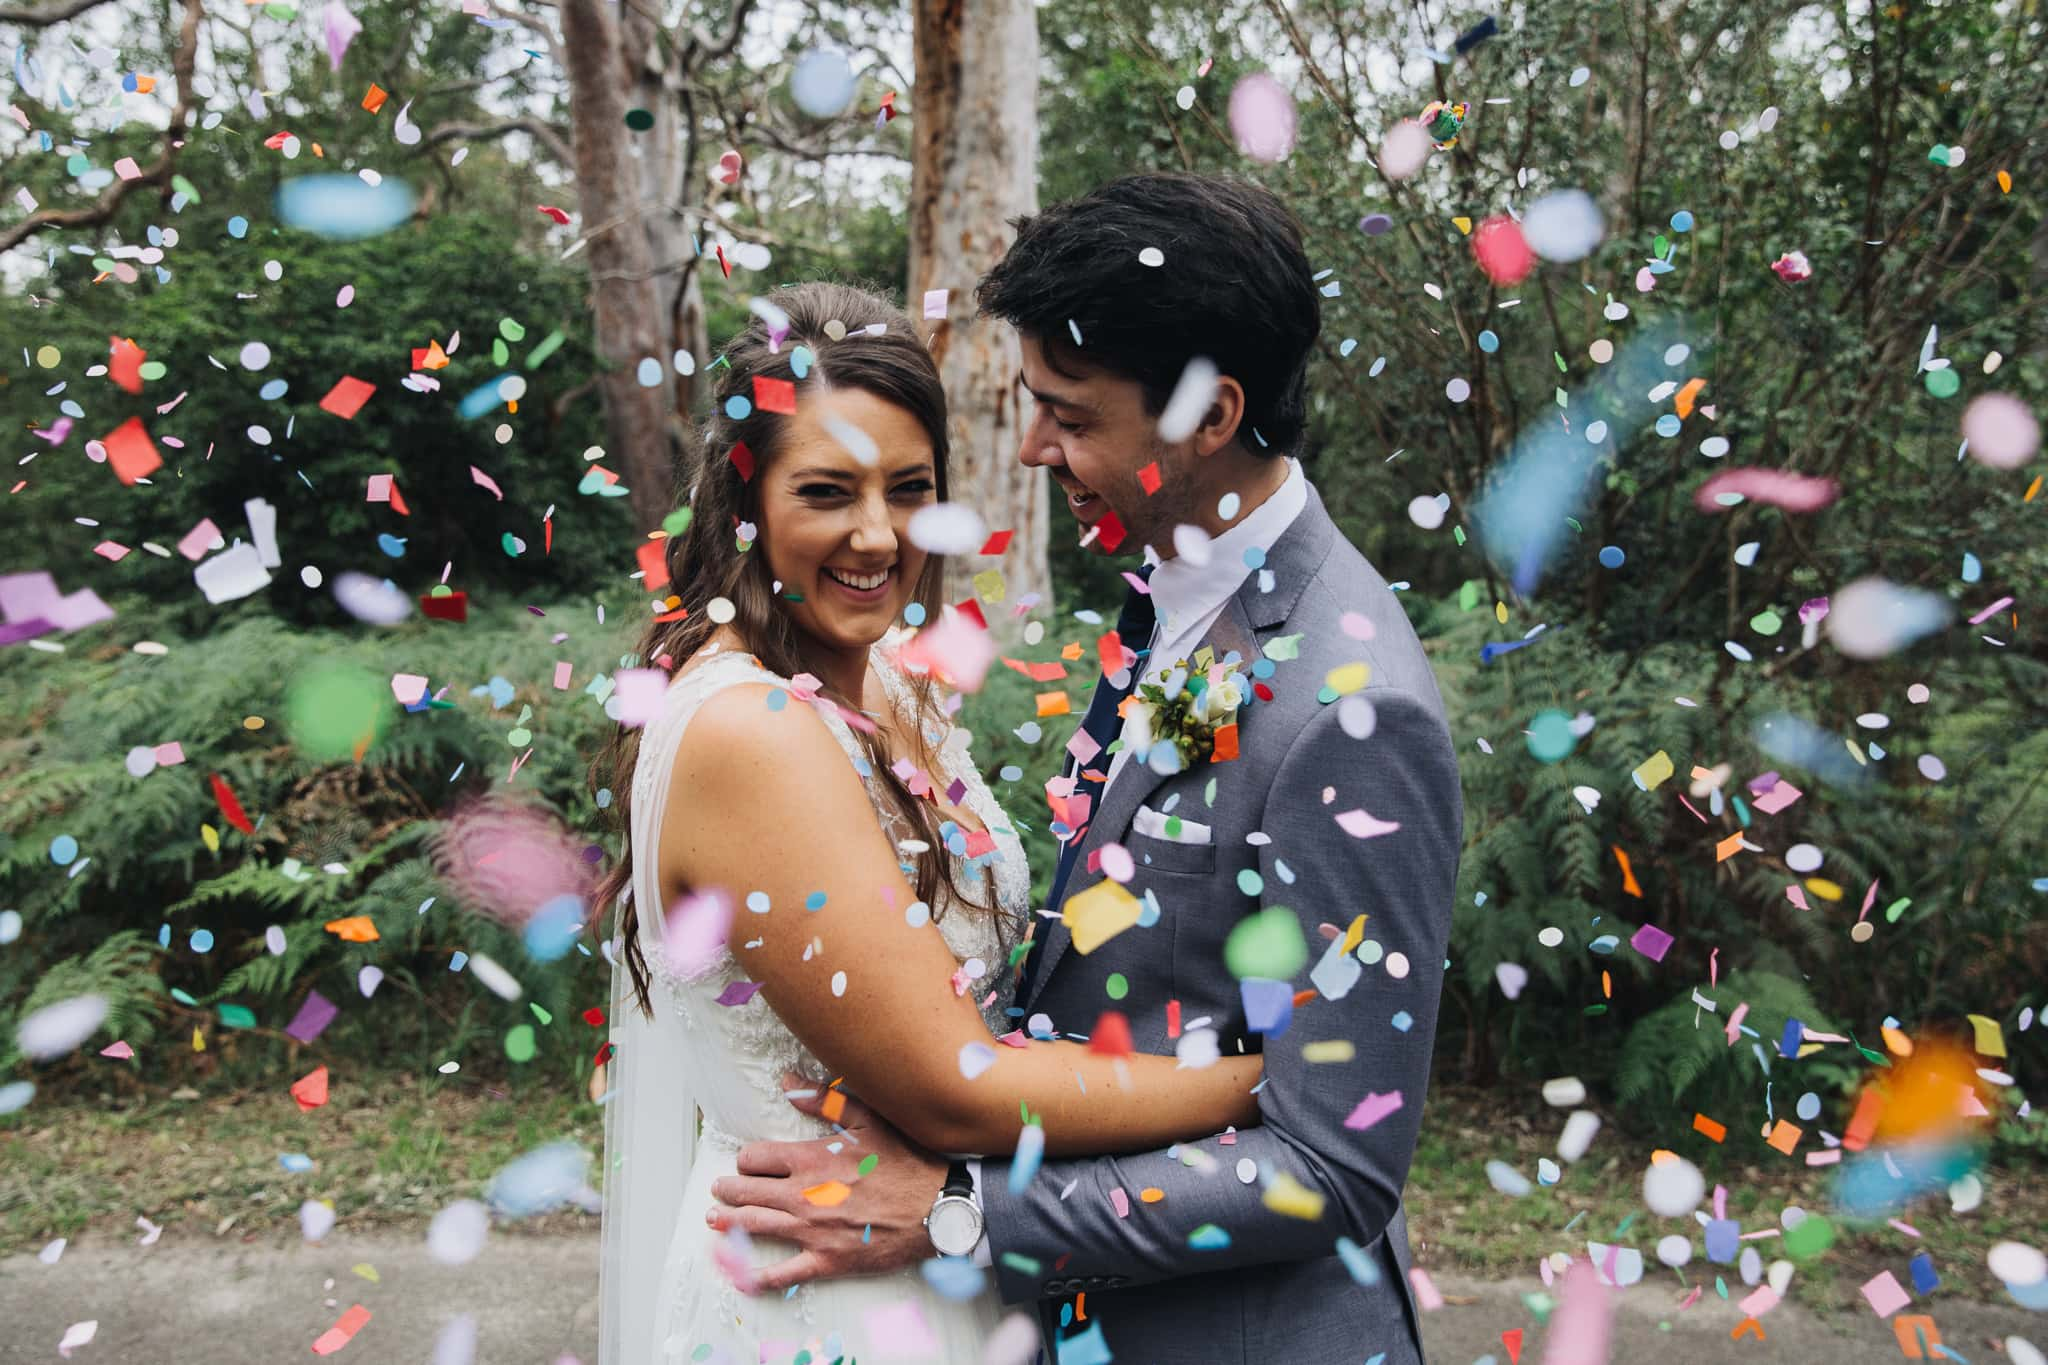 Confetti Photo of Caitlin and James showing their wedding feature